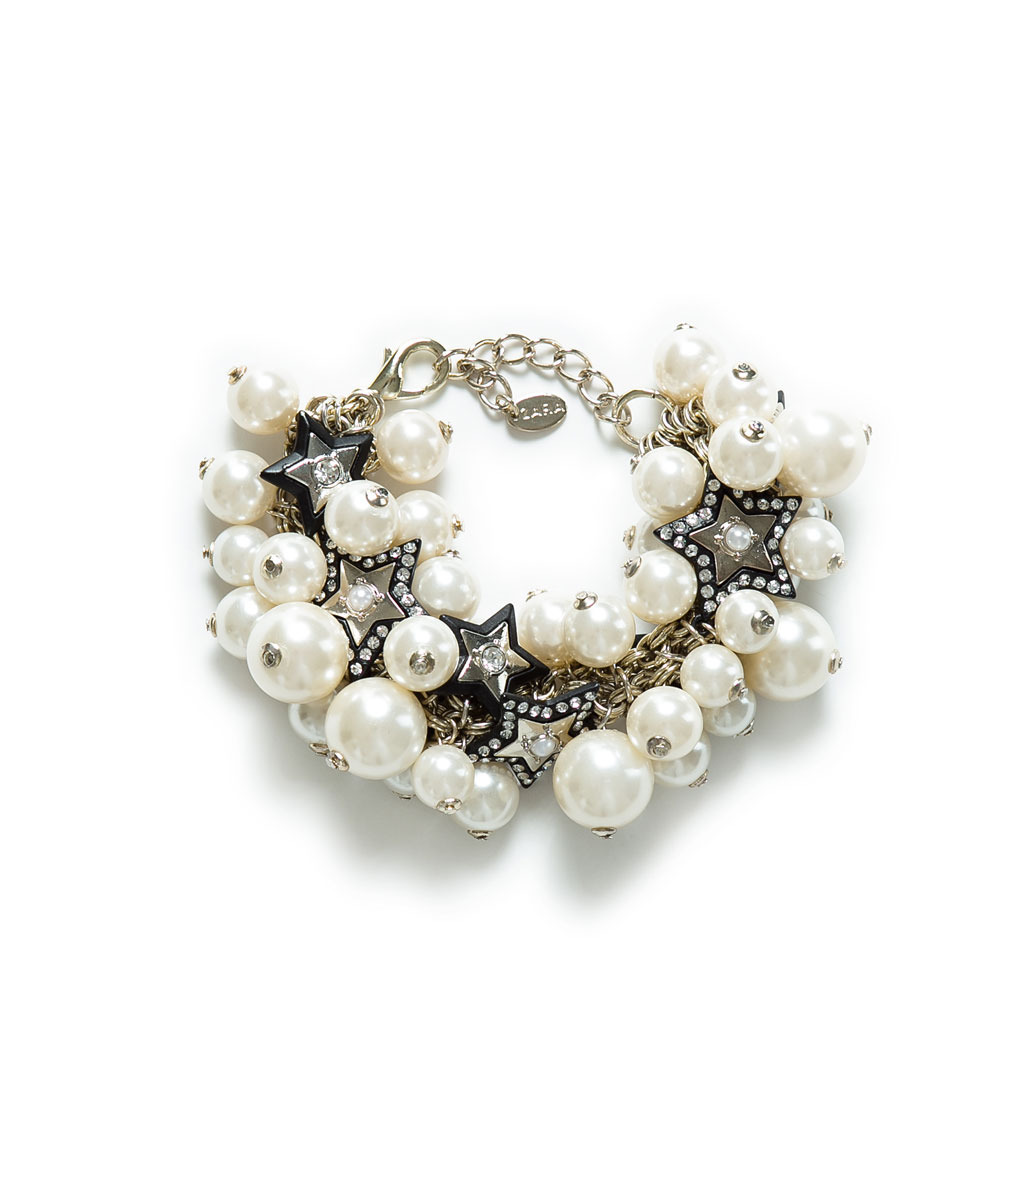 Gold Chain Bracelet With Pearls - predominant colour: ivory/cream; secondary colour: black; occasions: casual, evening, work, occasion; style: chain; size: large/oversized; material: plastic/rubber; finish: metallic; embellishment: pearls; season: a/w 2013